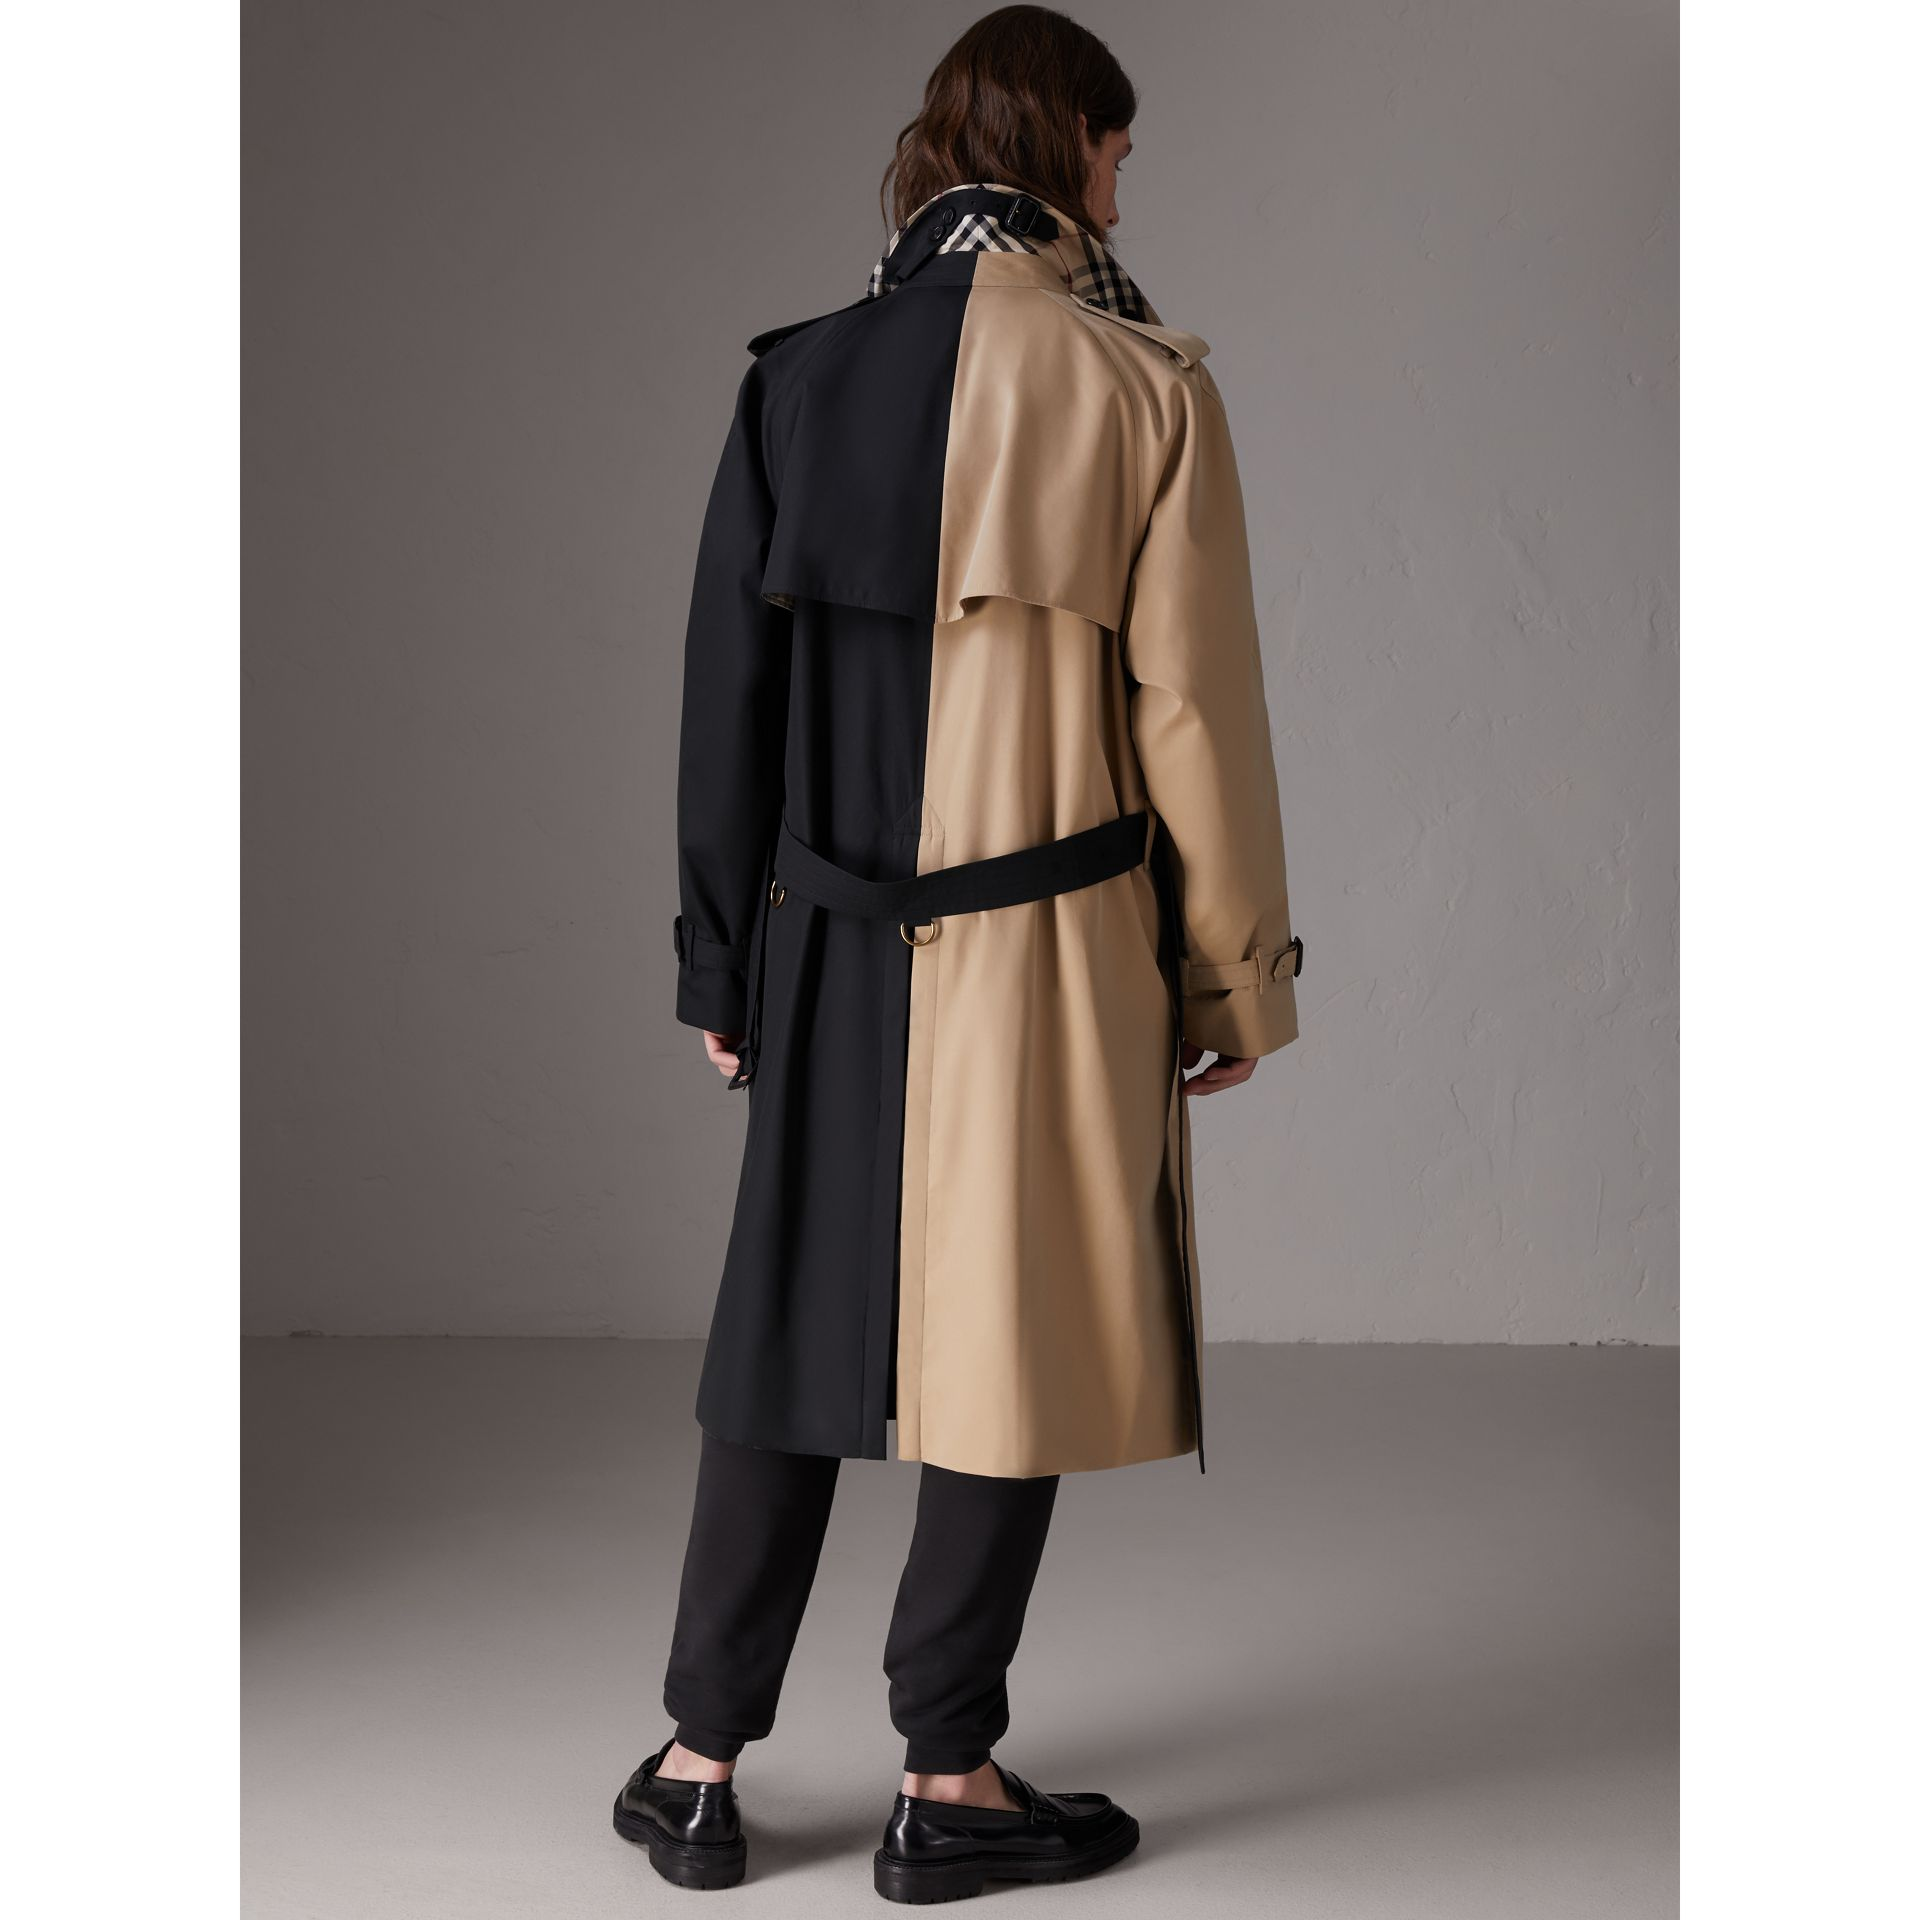 Gosha x Burberry Two-tone Trench Coat in Honey | Burberry United Kingdom - gallery image 2